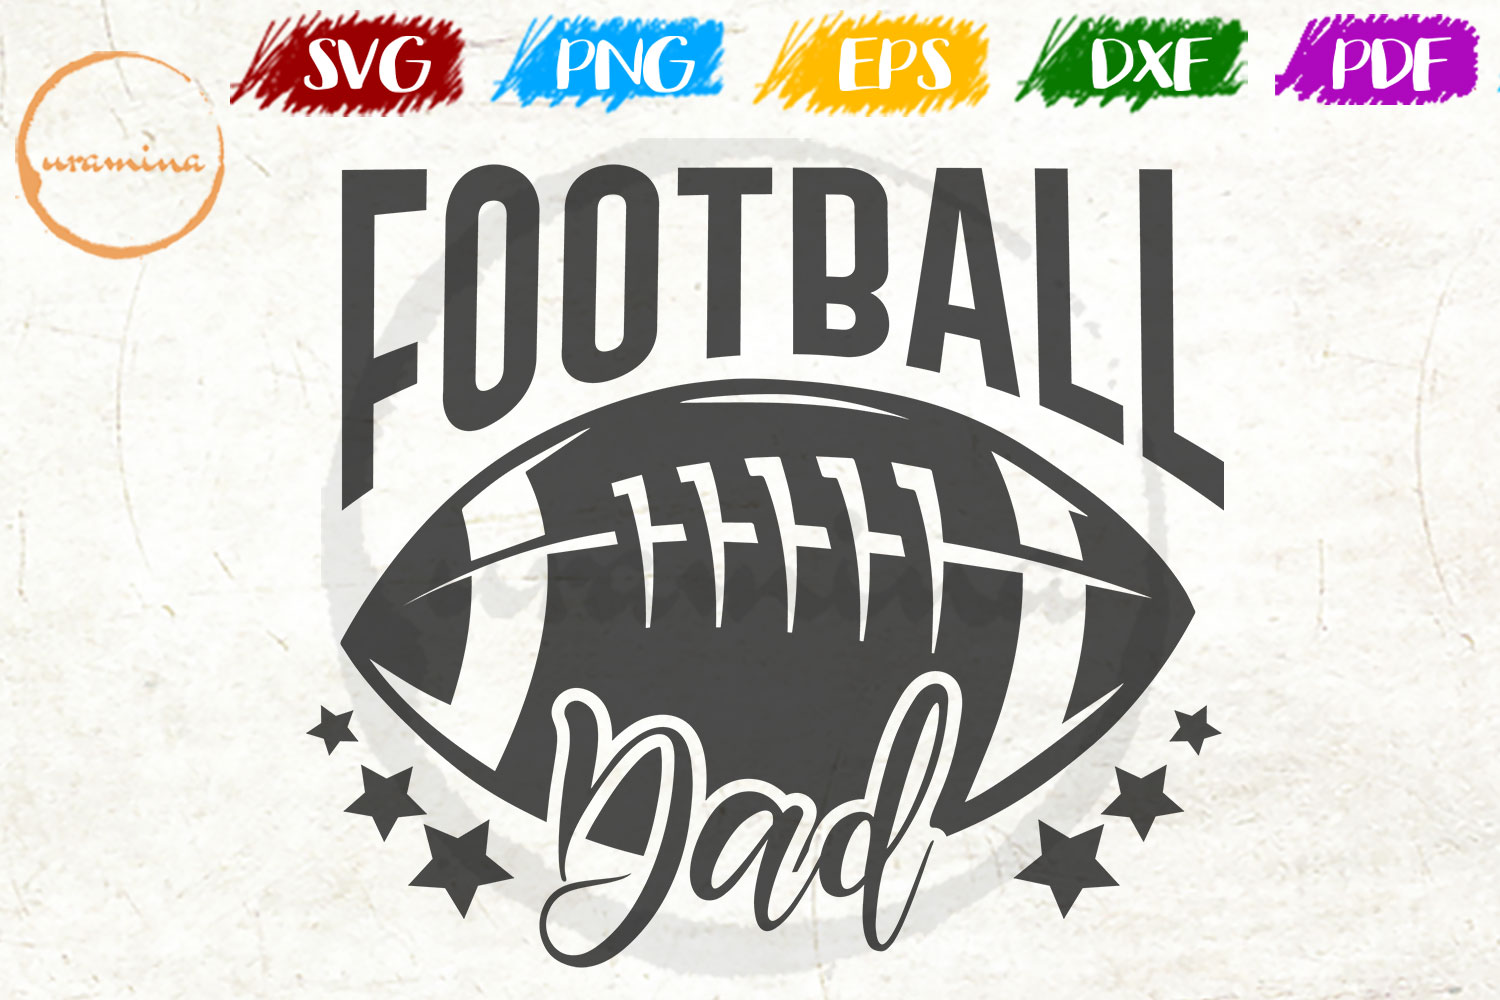 Download Free Football Dad Graphic By Uramina Creative Fabrica for Cricut Explore, Silhouette and other cutting machines.